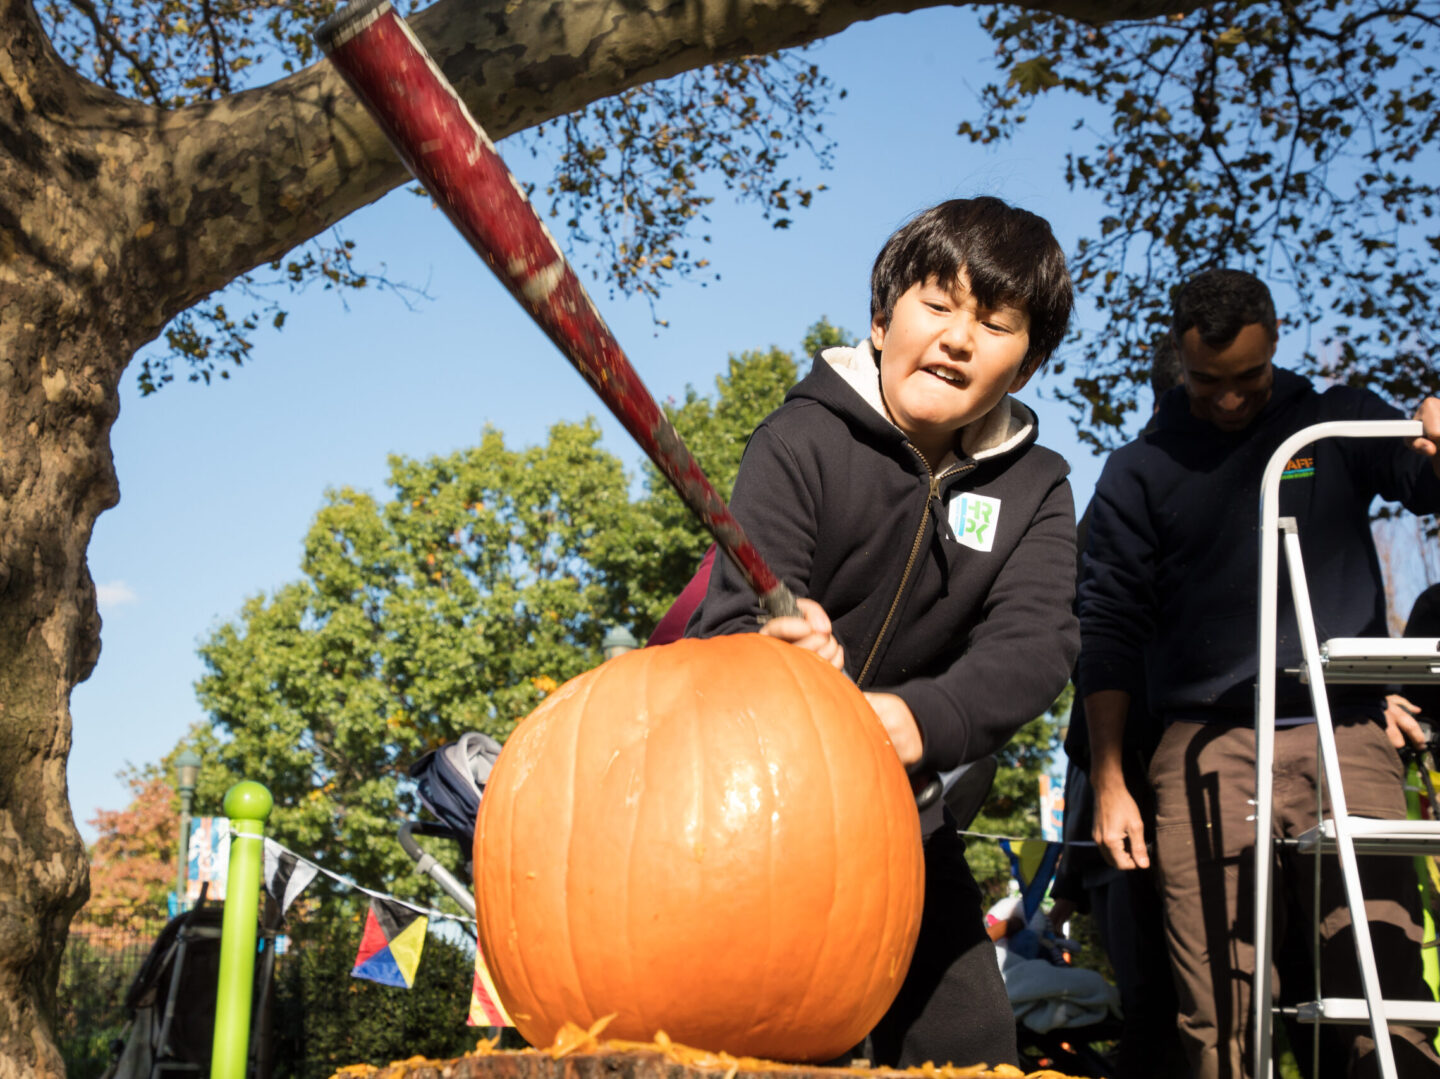 A kid readies his swing to smash the pumpkin